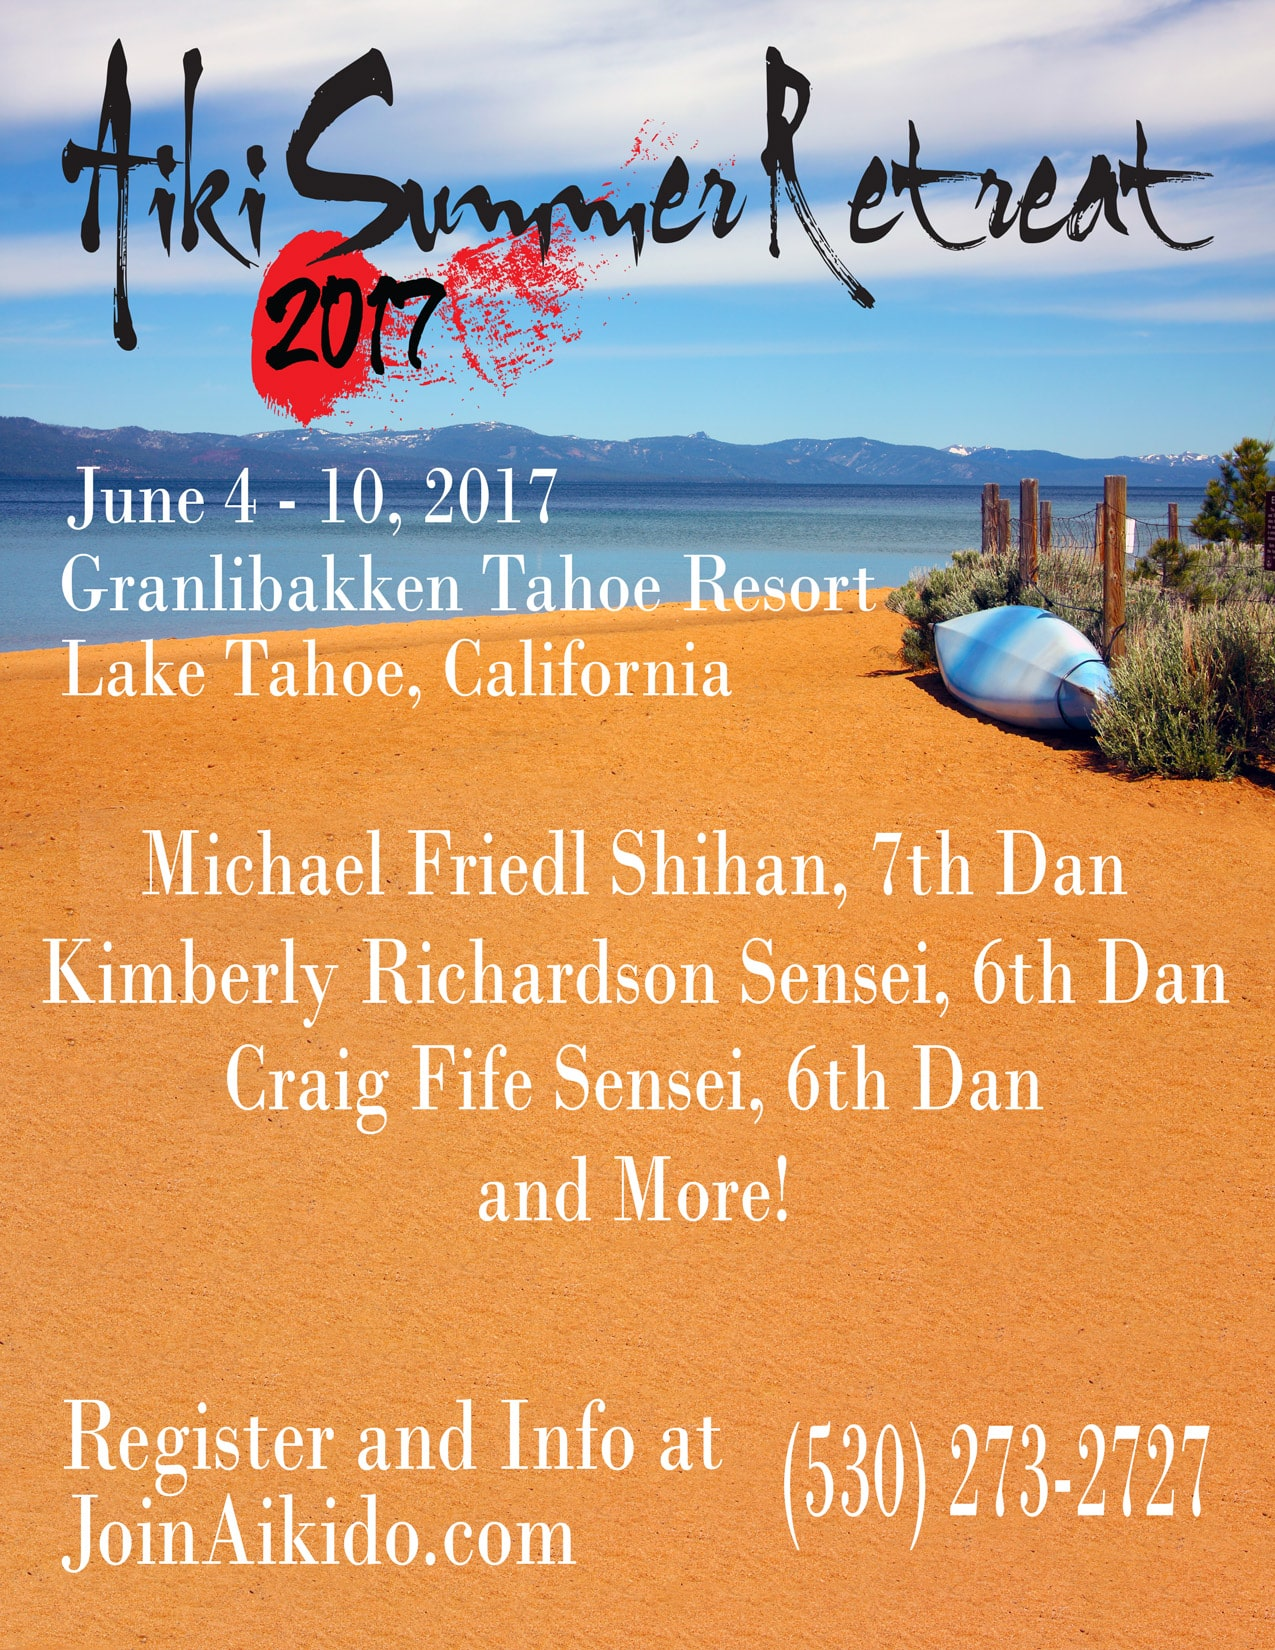 Aiki Summer Retreat 2017 flyer